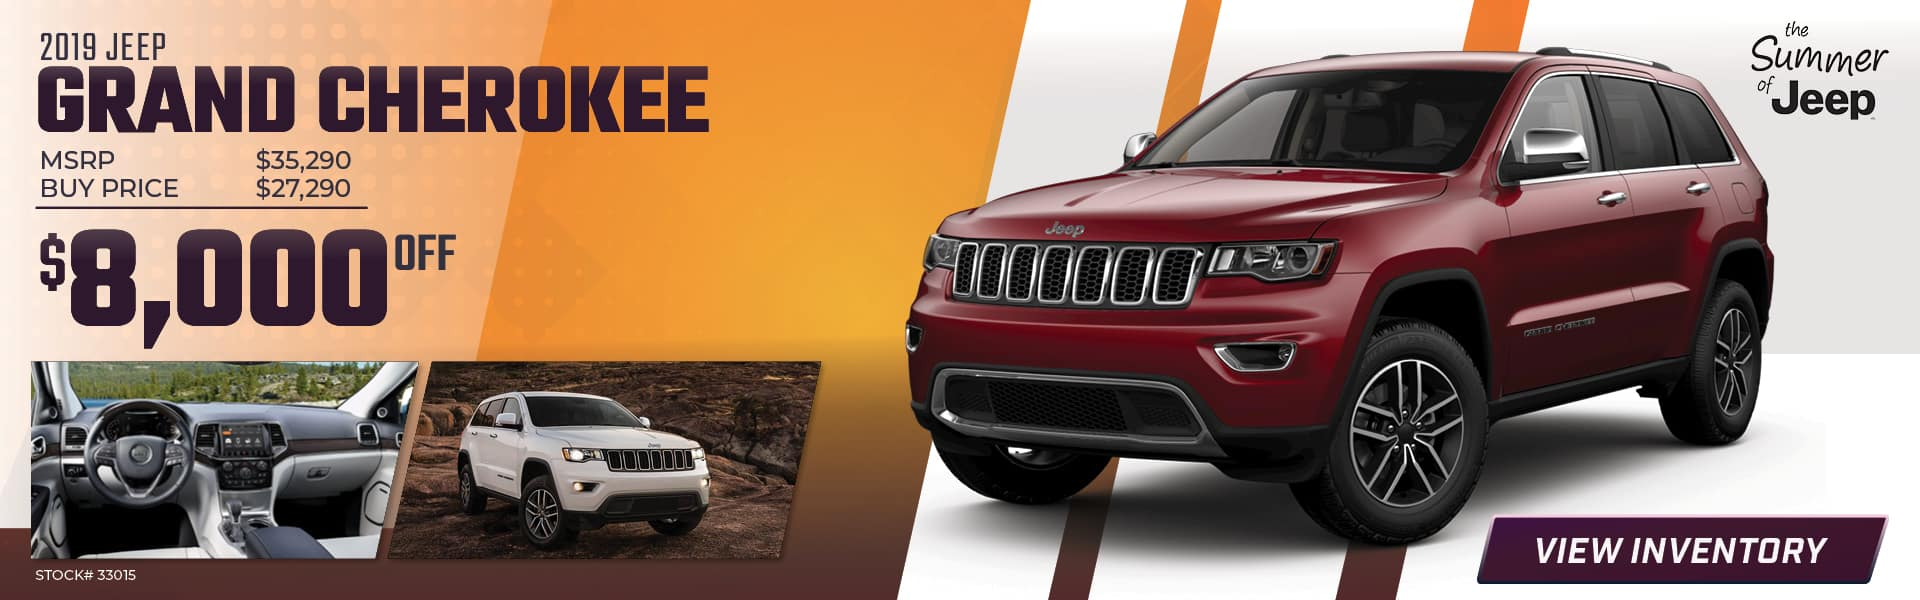 Dodge Chrysler Jeep RAM Dealer Atlanta, Marietta GA | New & Used